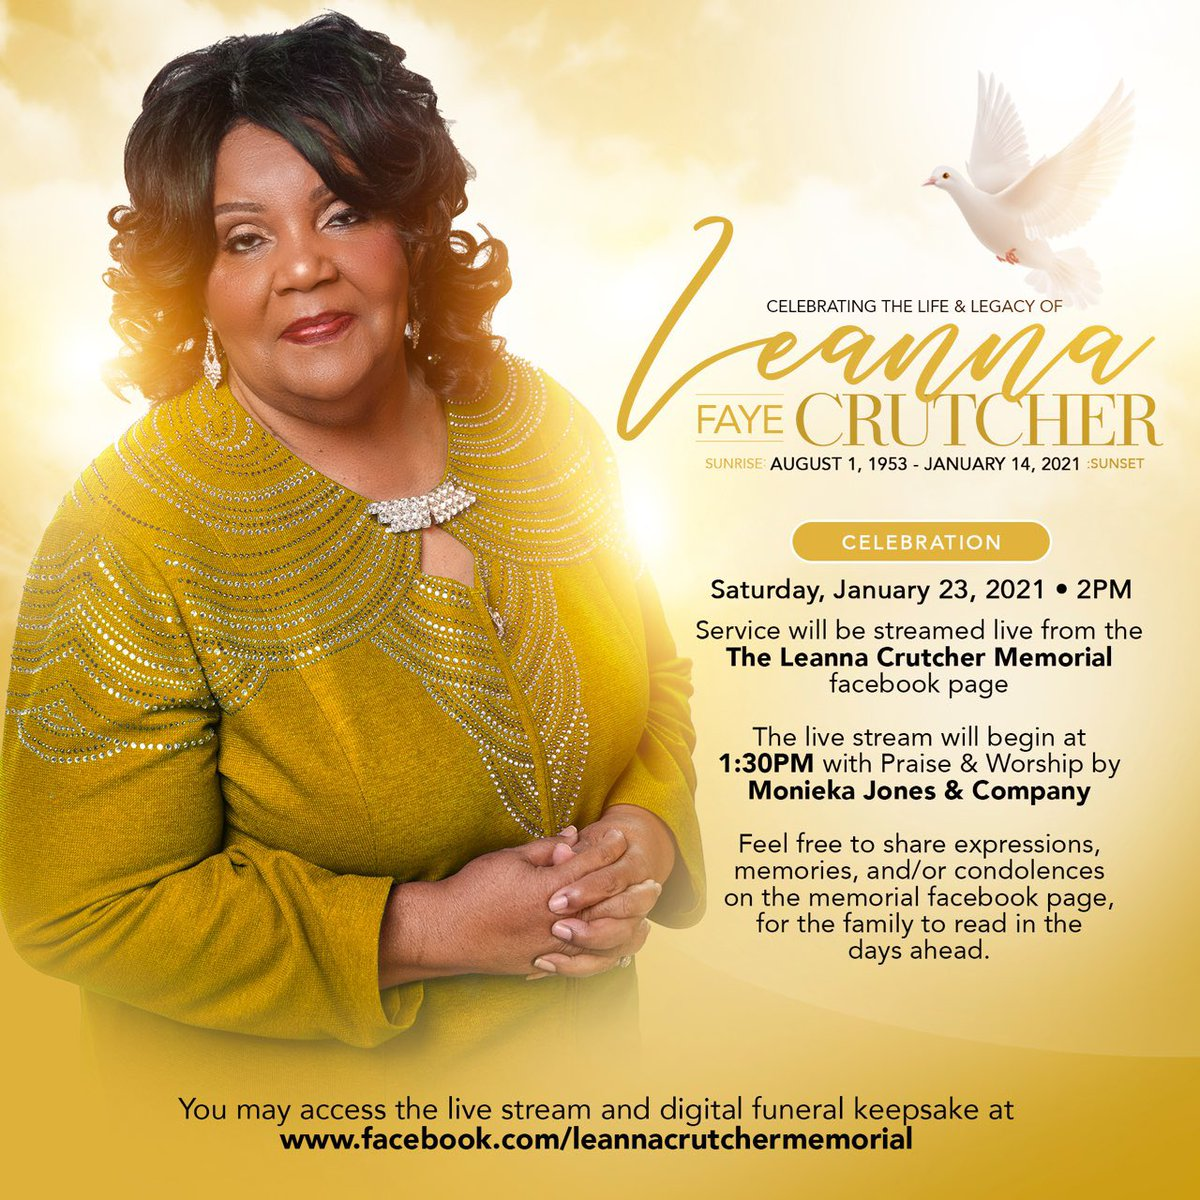 """Leanna Faye Crutcher (""""Ma Crutcher"""") was an extraordinary woman, mother, grandmother, wife, leader. A true """"Mother of the Movement."""" Her search for justice for her son #TerenceCrutcher and for Black ppl in Tulsa is a powerful inspiration for all who do this work."""